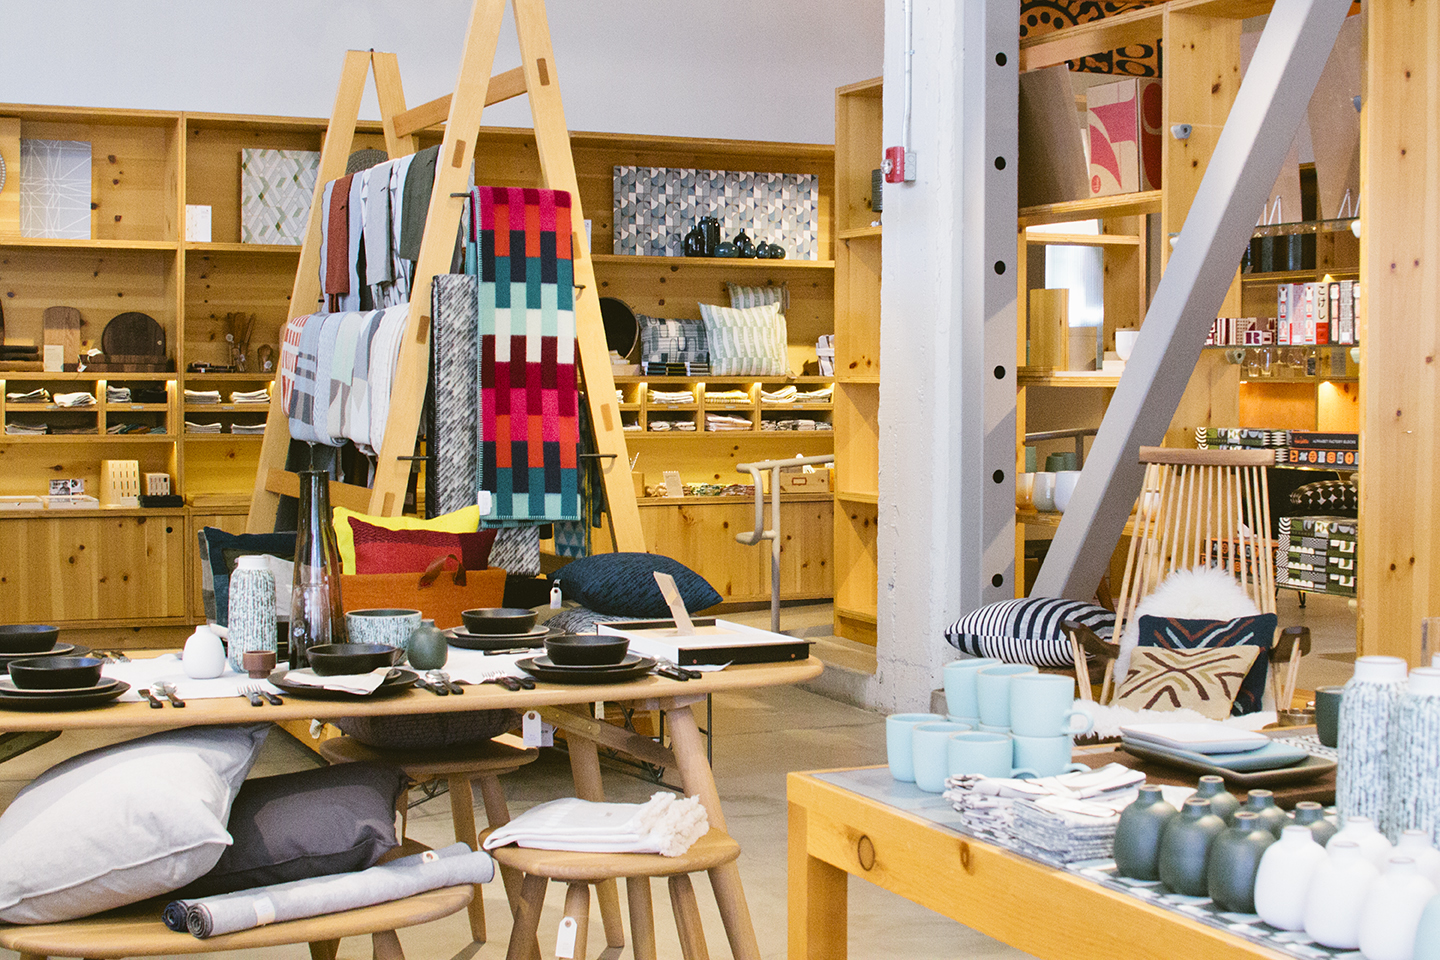 Definitely a place that leaves making you want to only own beautifully designed and carefully produced things.